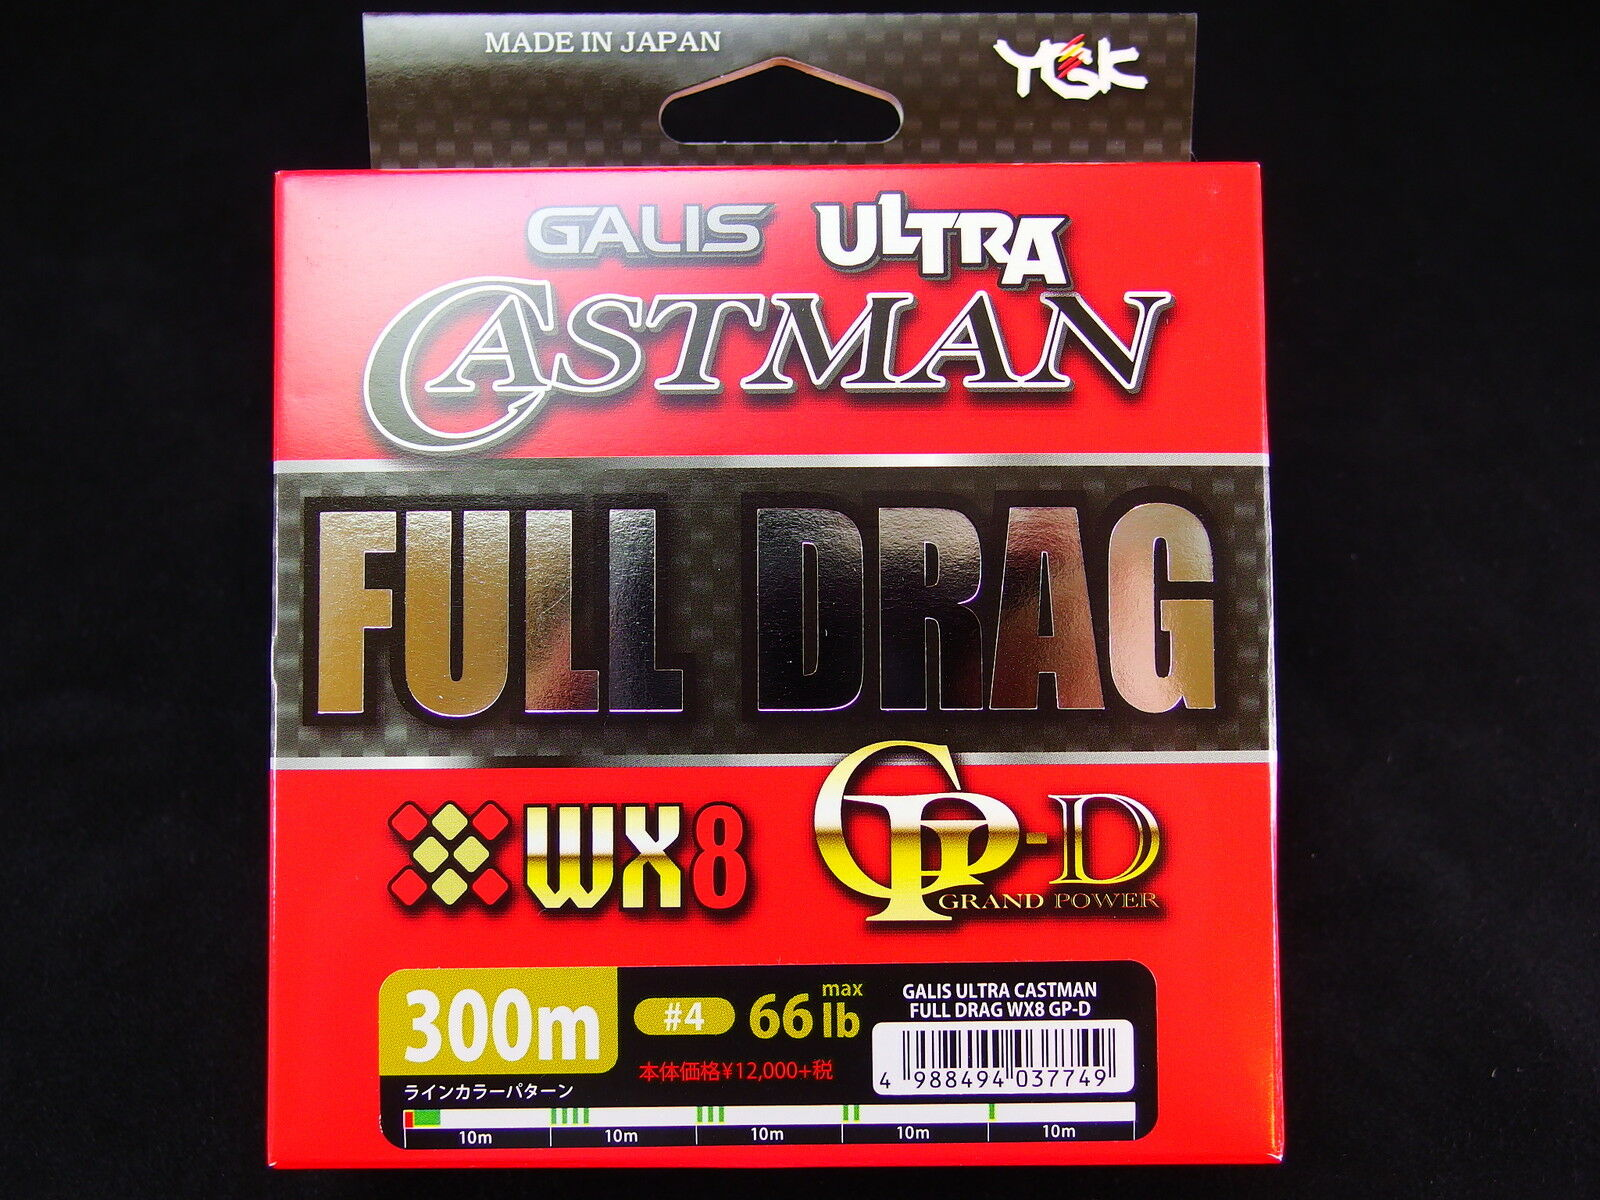 YGK - GALIS ULTRA CASTMAN FULL DRAG WX8 GP-D 300m lb